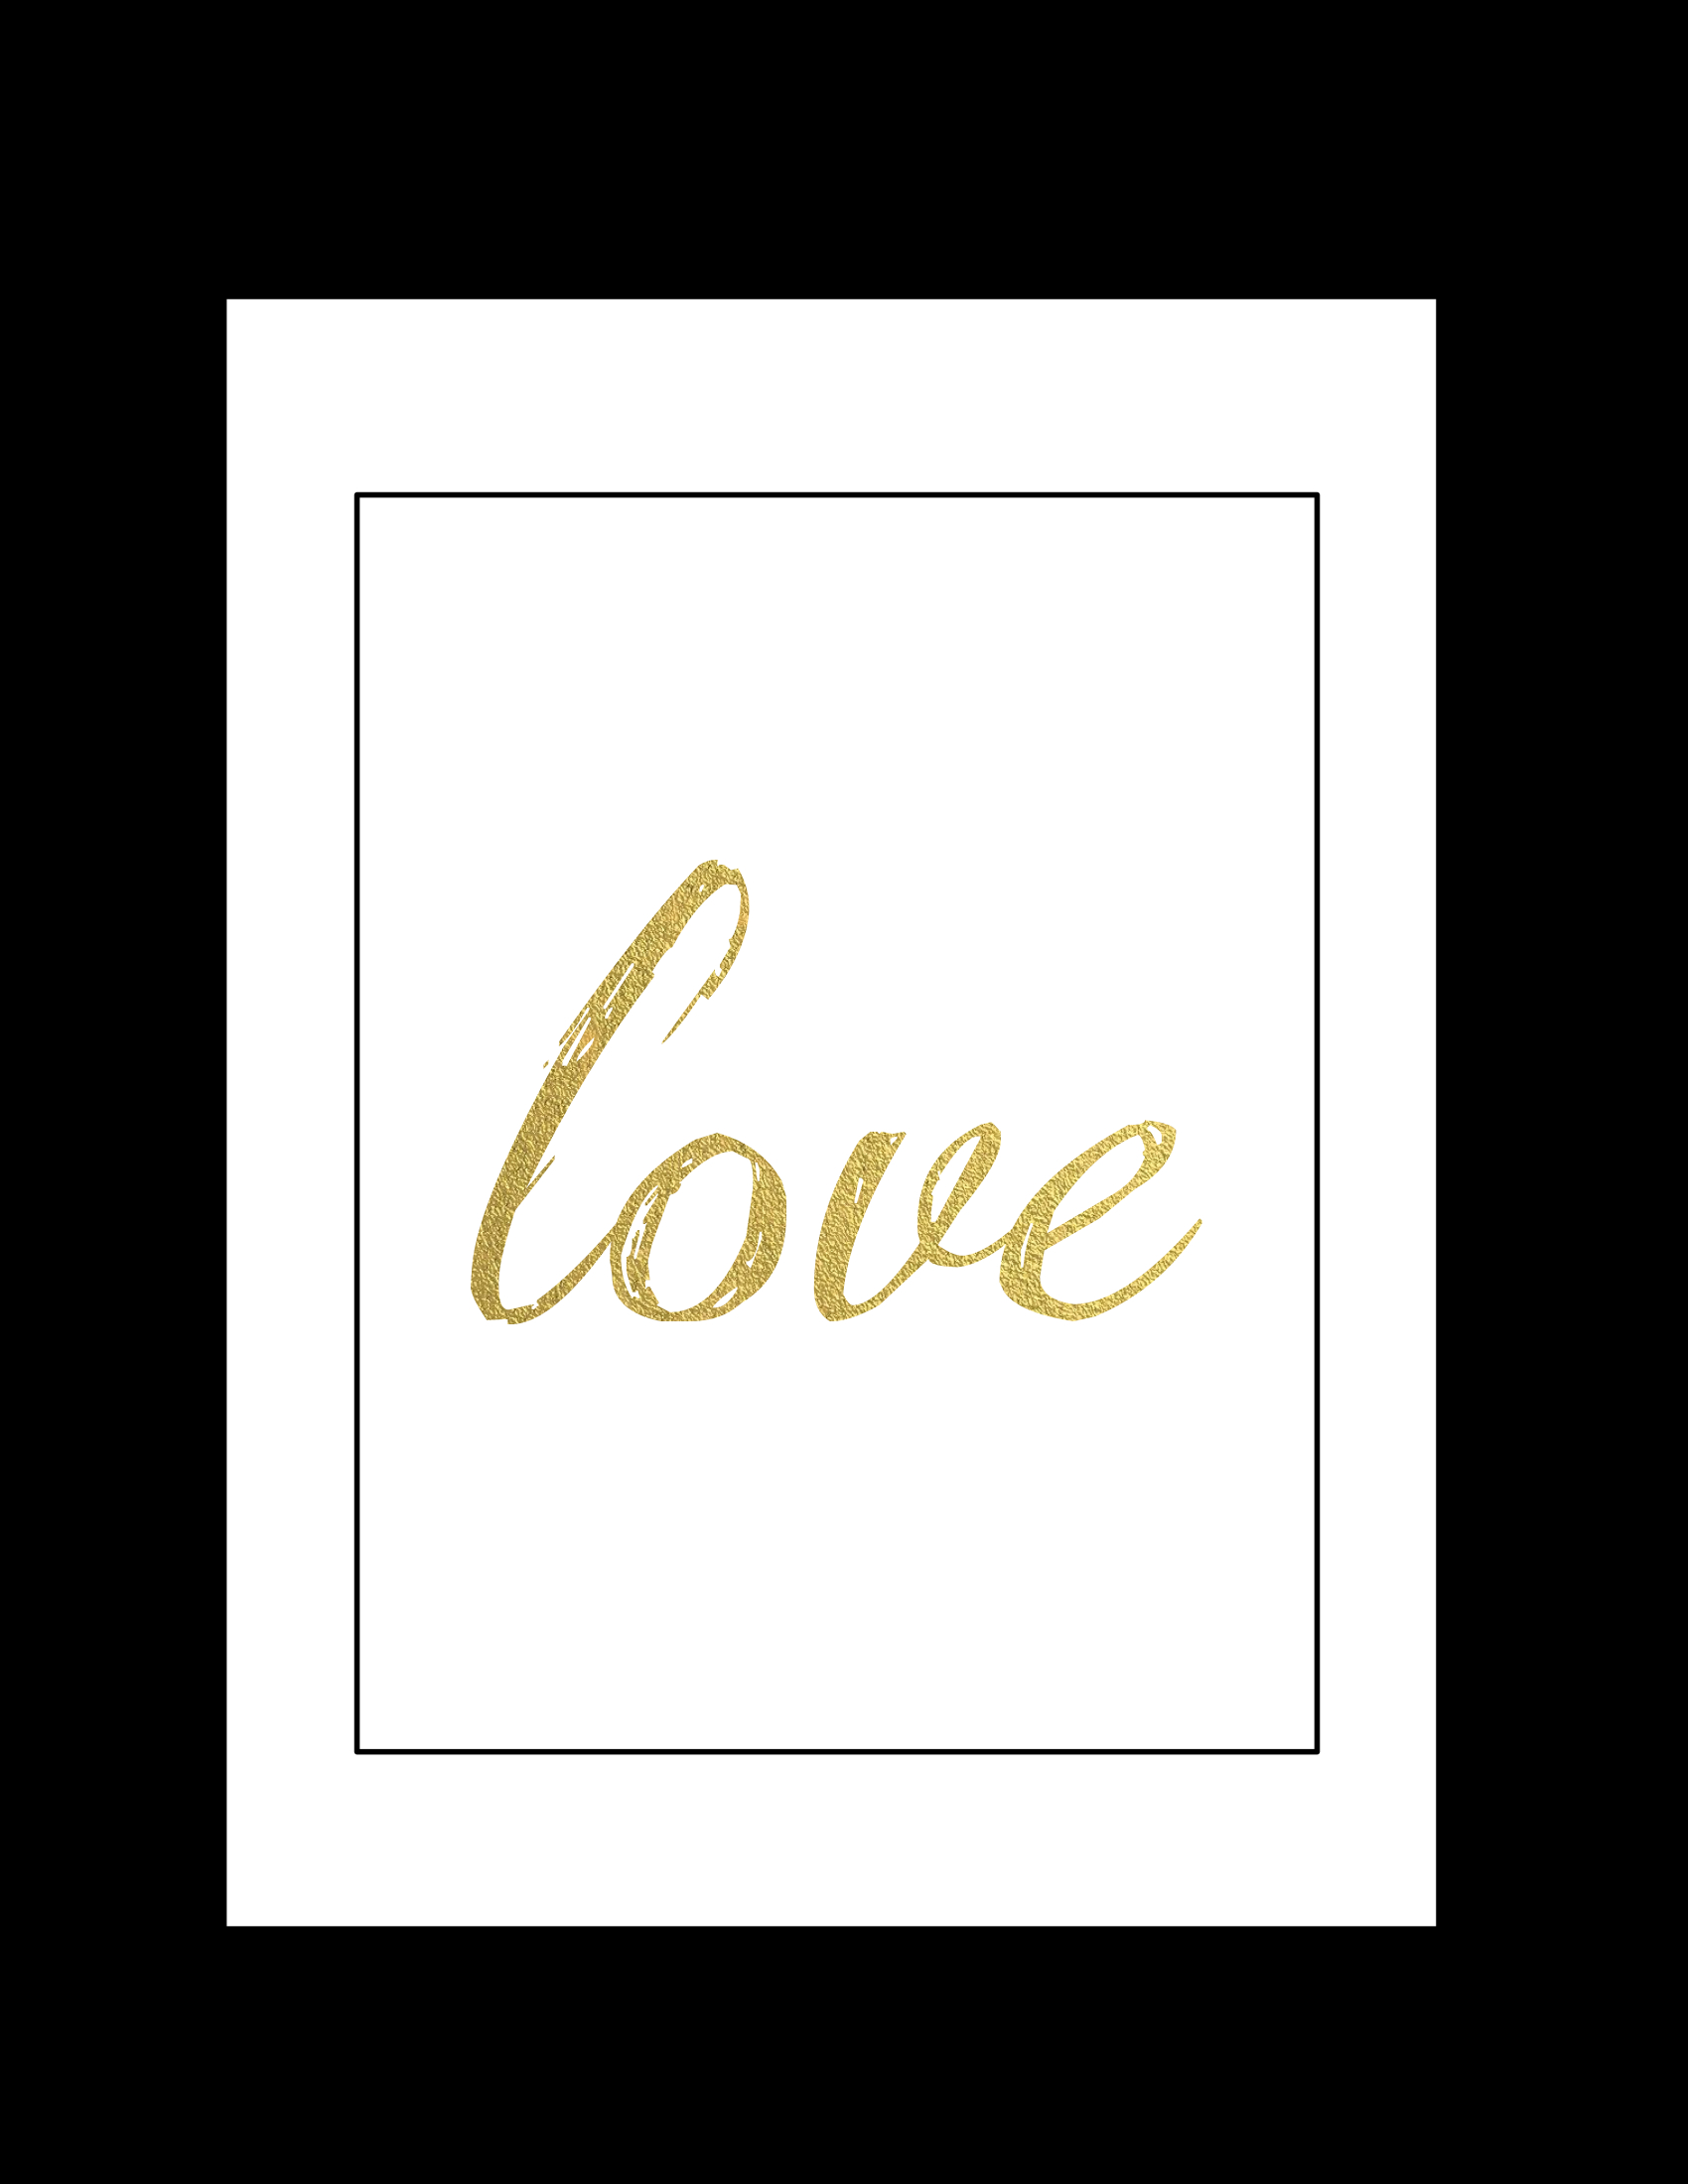 picture about Free Printable Wall Art Decor known as Free of charge Printable Wall Artwork: Black and Gold Enjoy - Paper Path